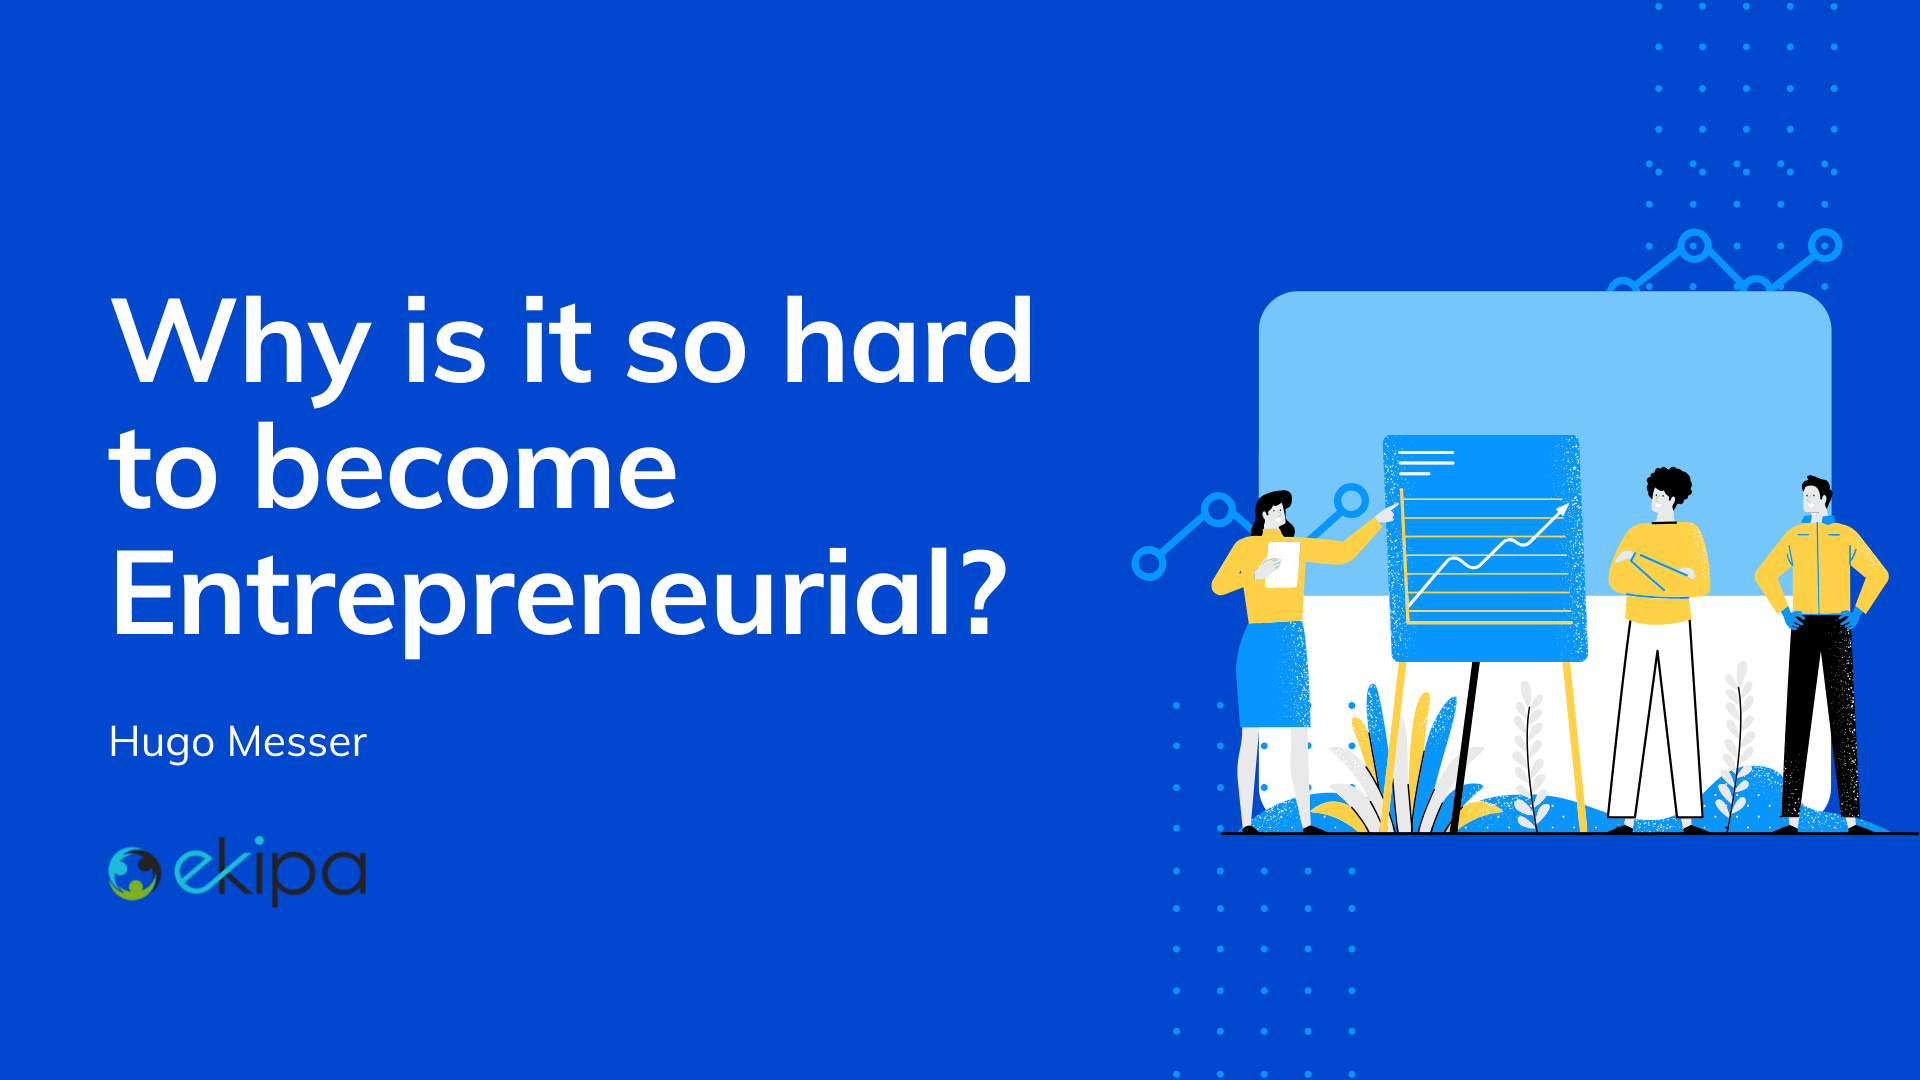 Why is it so hard to become Entrepreneurial?